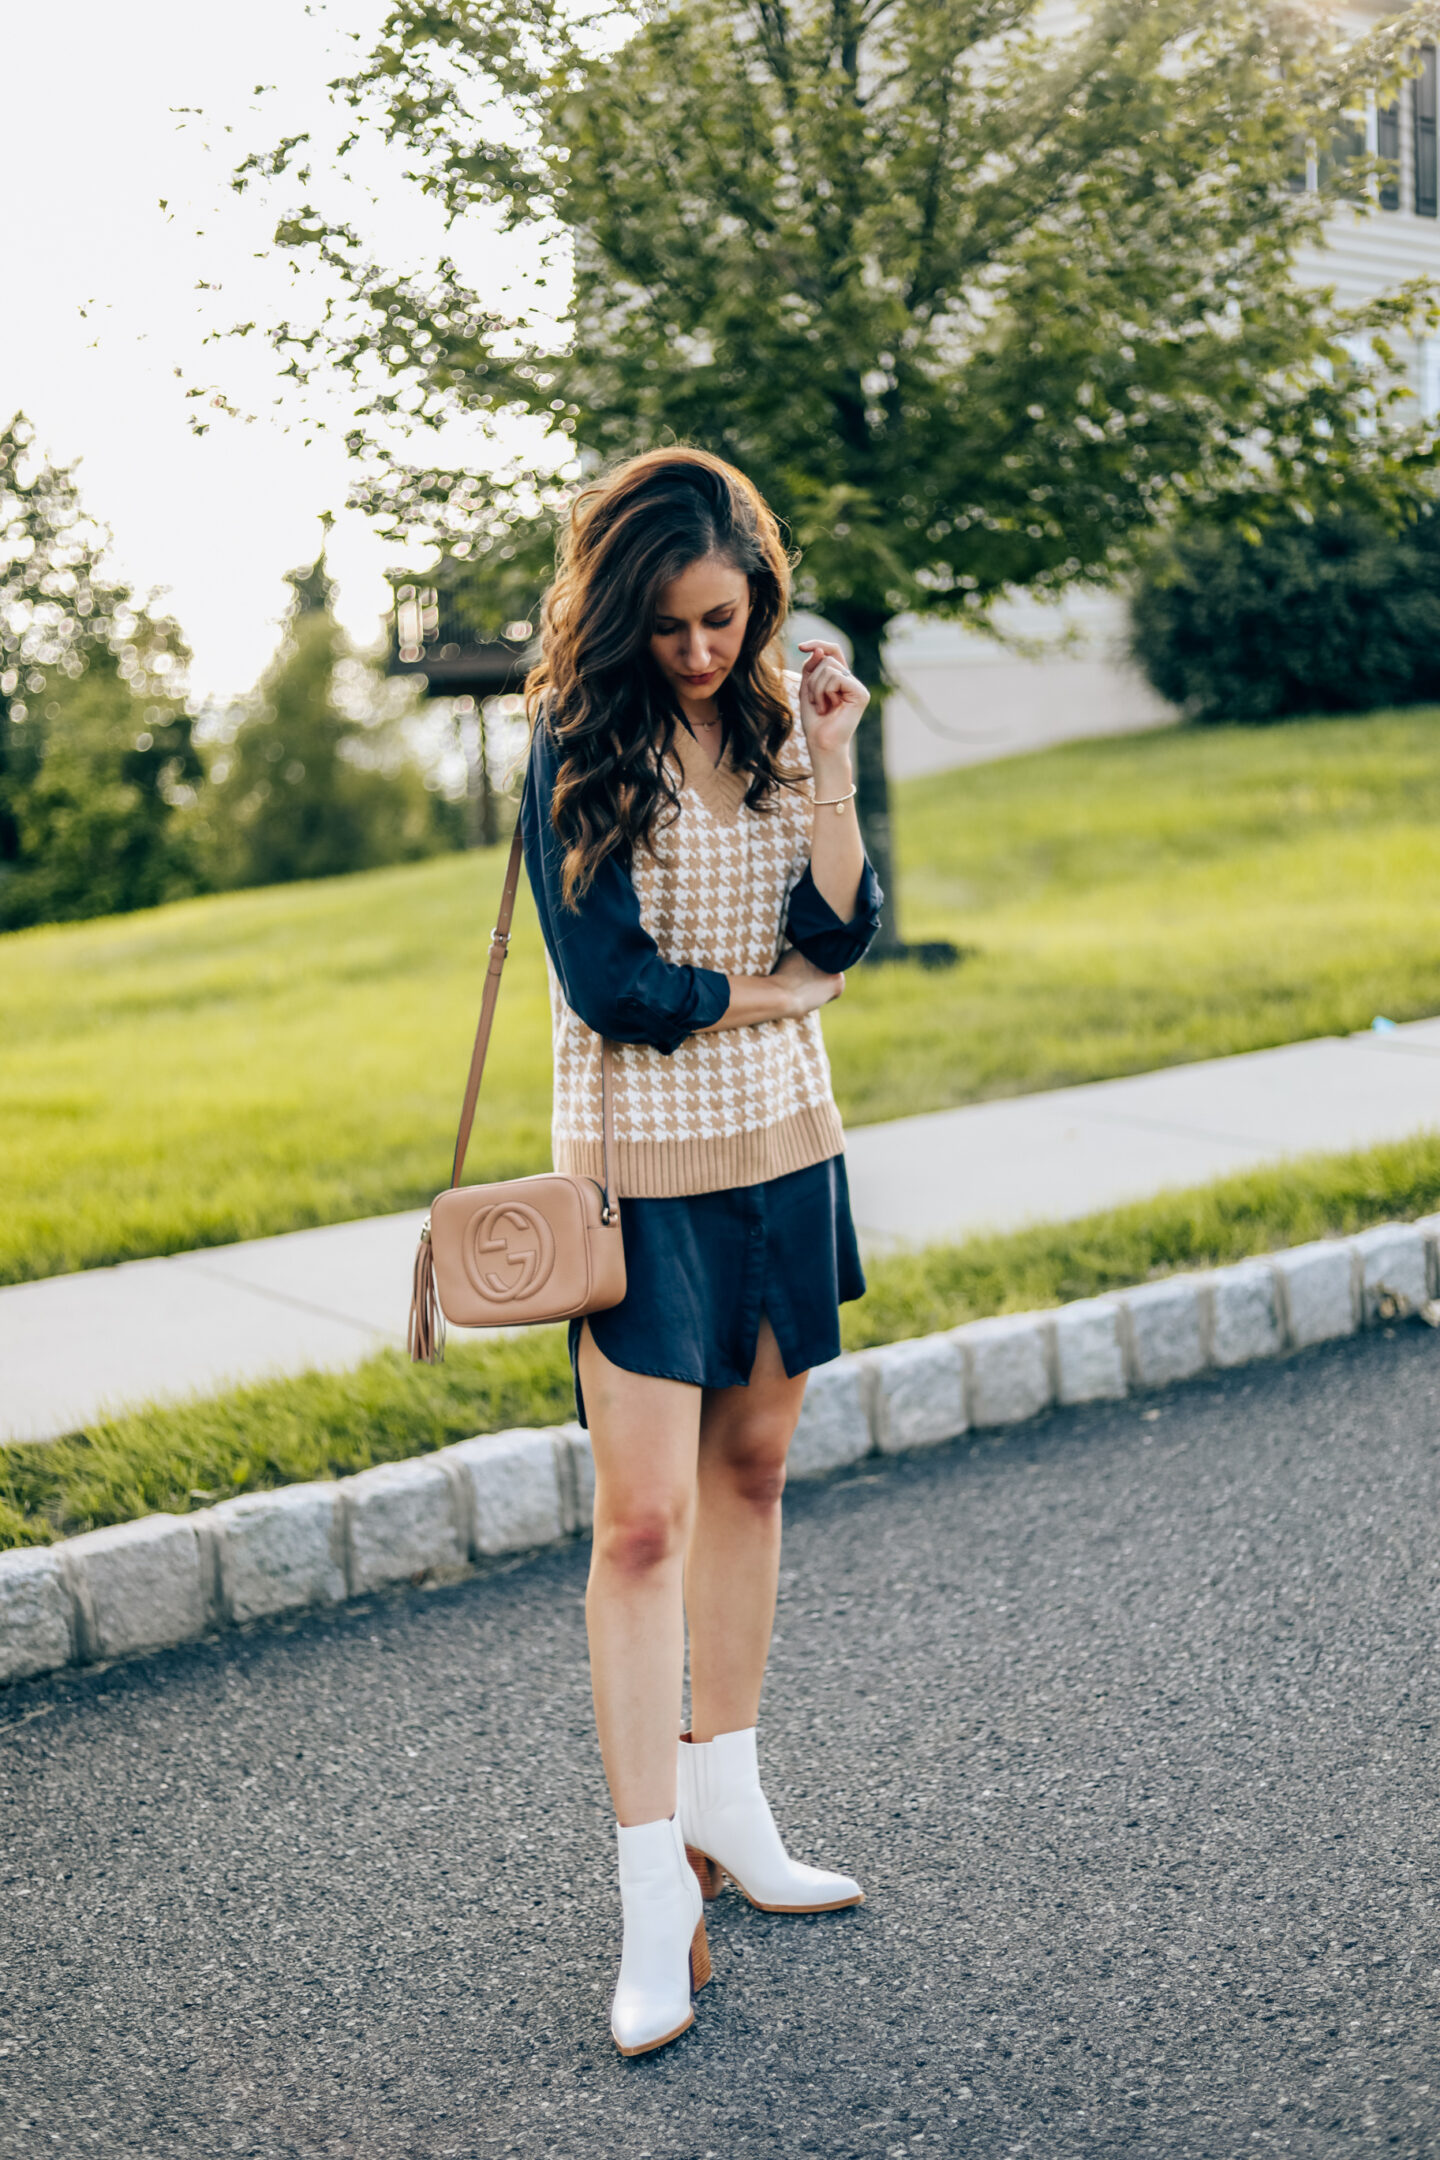 Chic Sweater Vest Outfit Idea from Amazon - How to style a sweater vest to transition to fall!